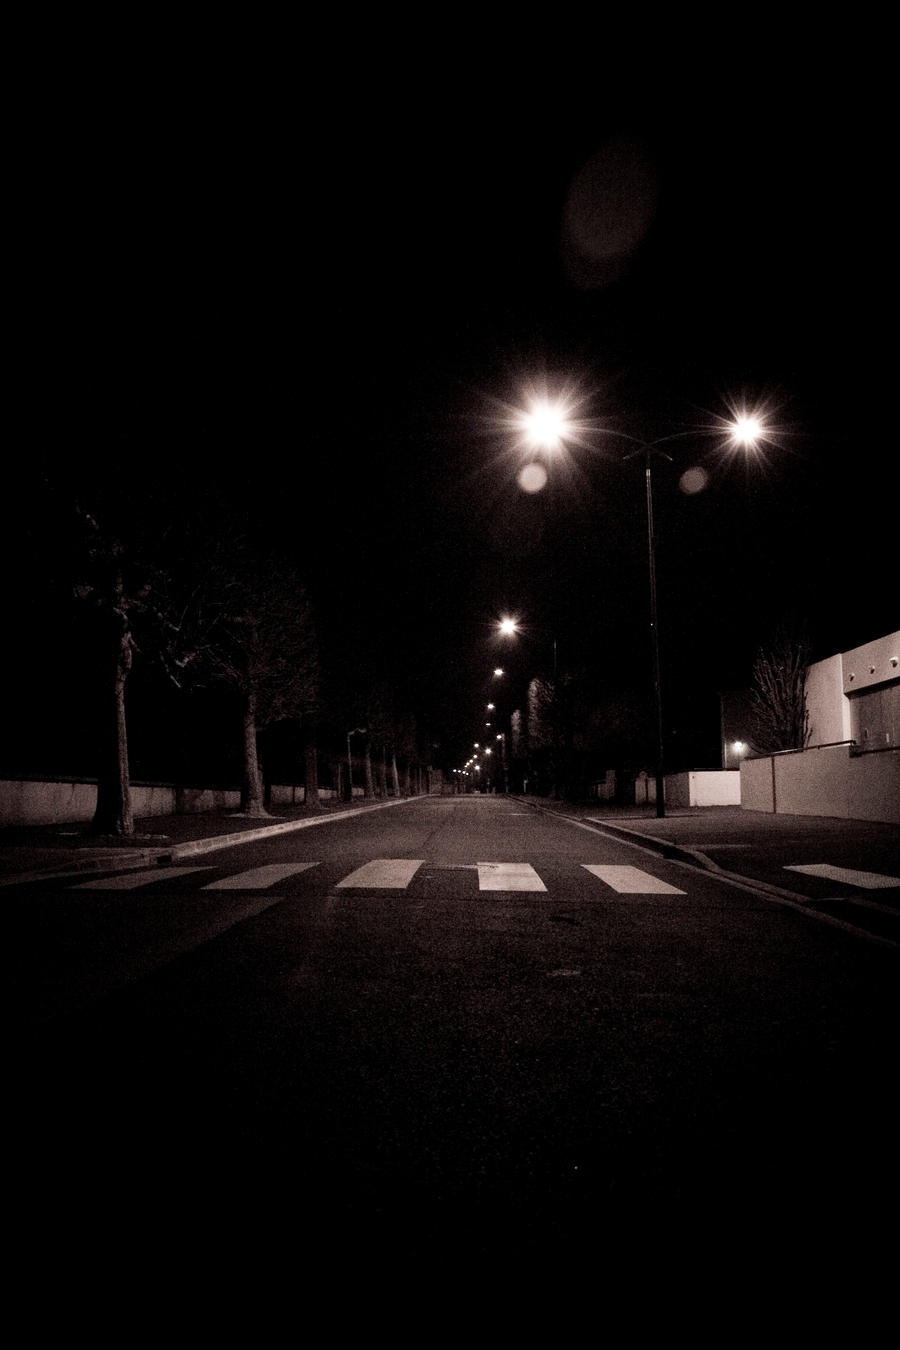 Dark Street 1 By Fabch On Deviantart